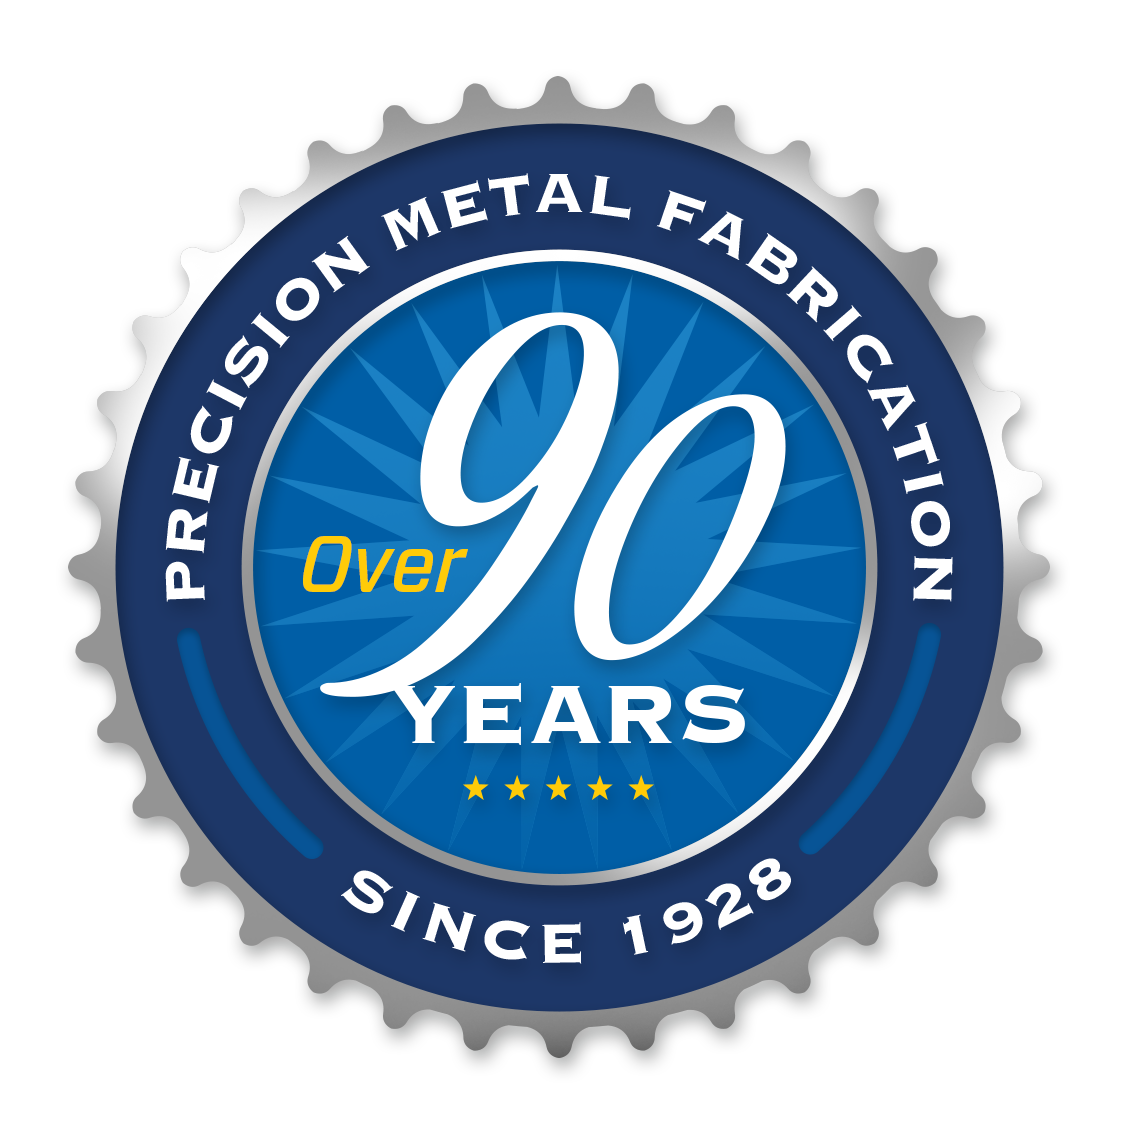 precision metal fabrication since 1928